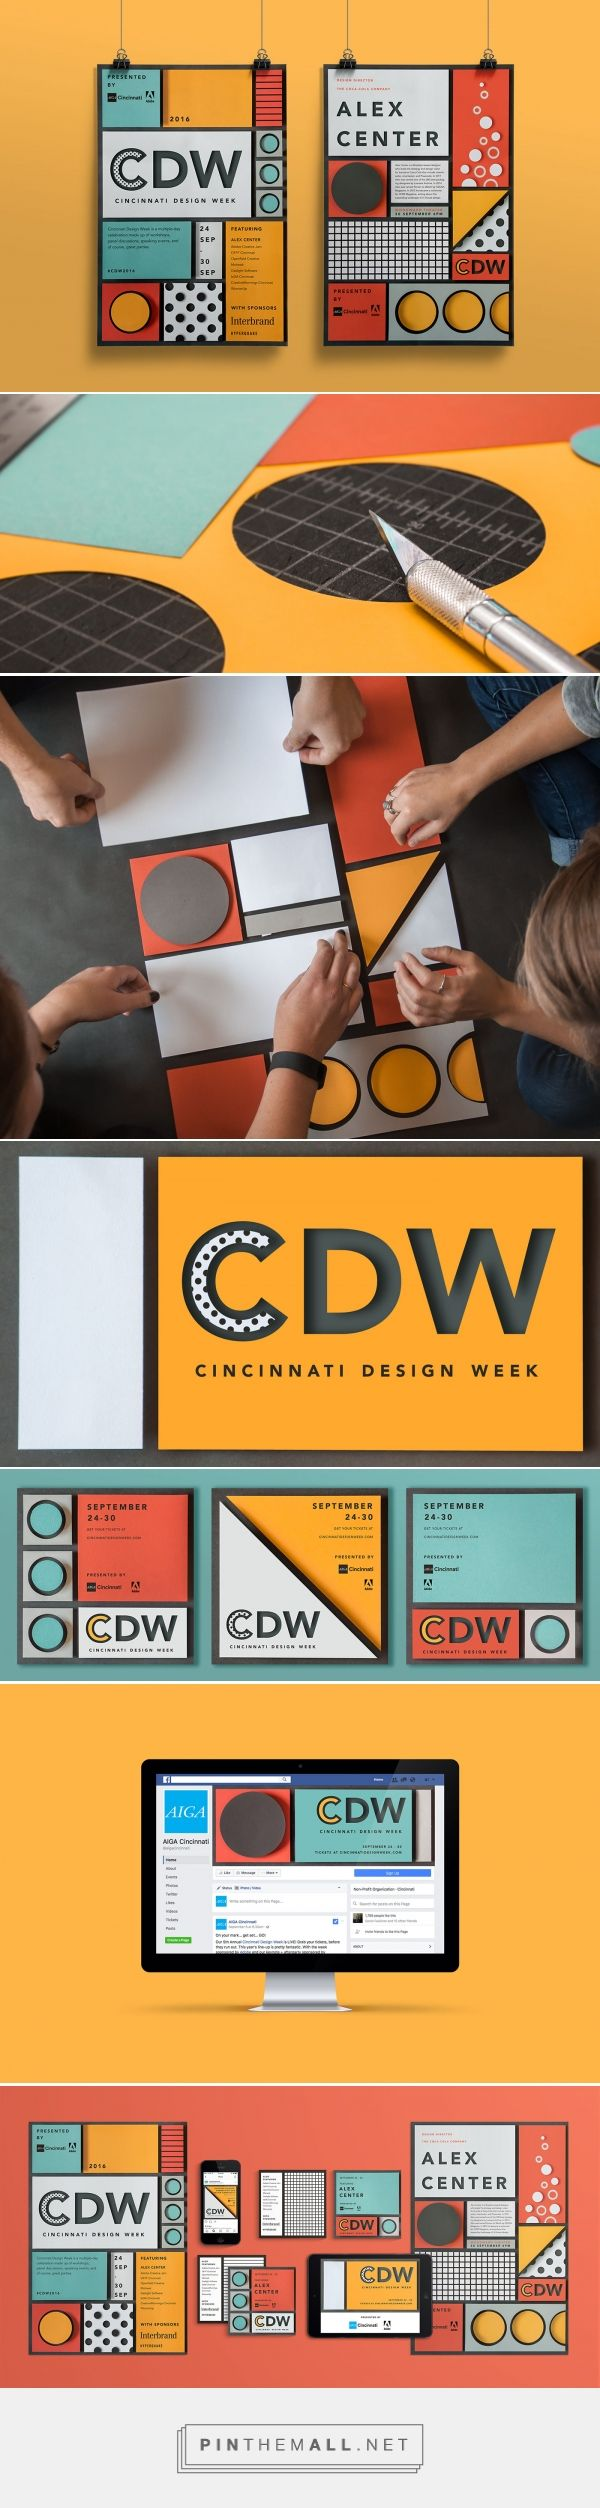 AIGA Cincinnati Design Week Branding by Hyperquake, LLC | Fivestar Branding Agency – Design and Branding Agency & Curated Inspiration Gallery